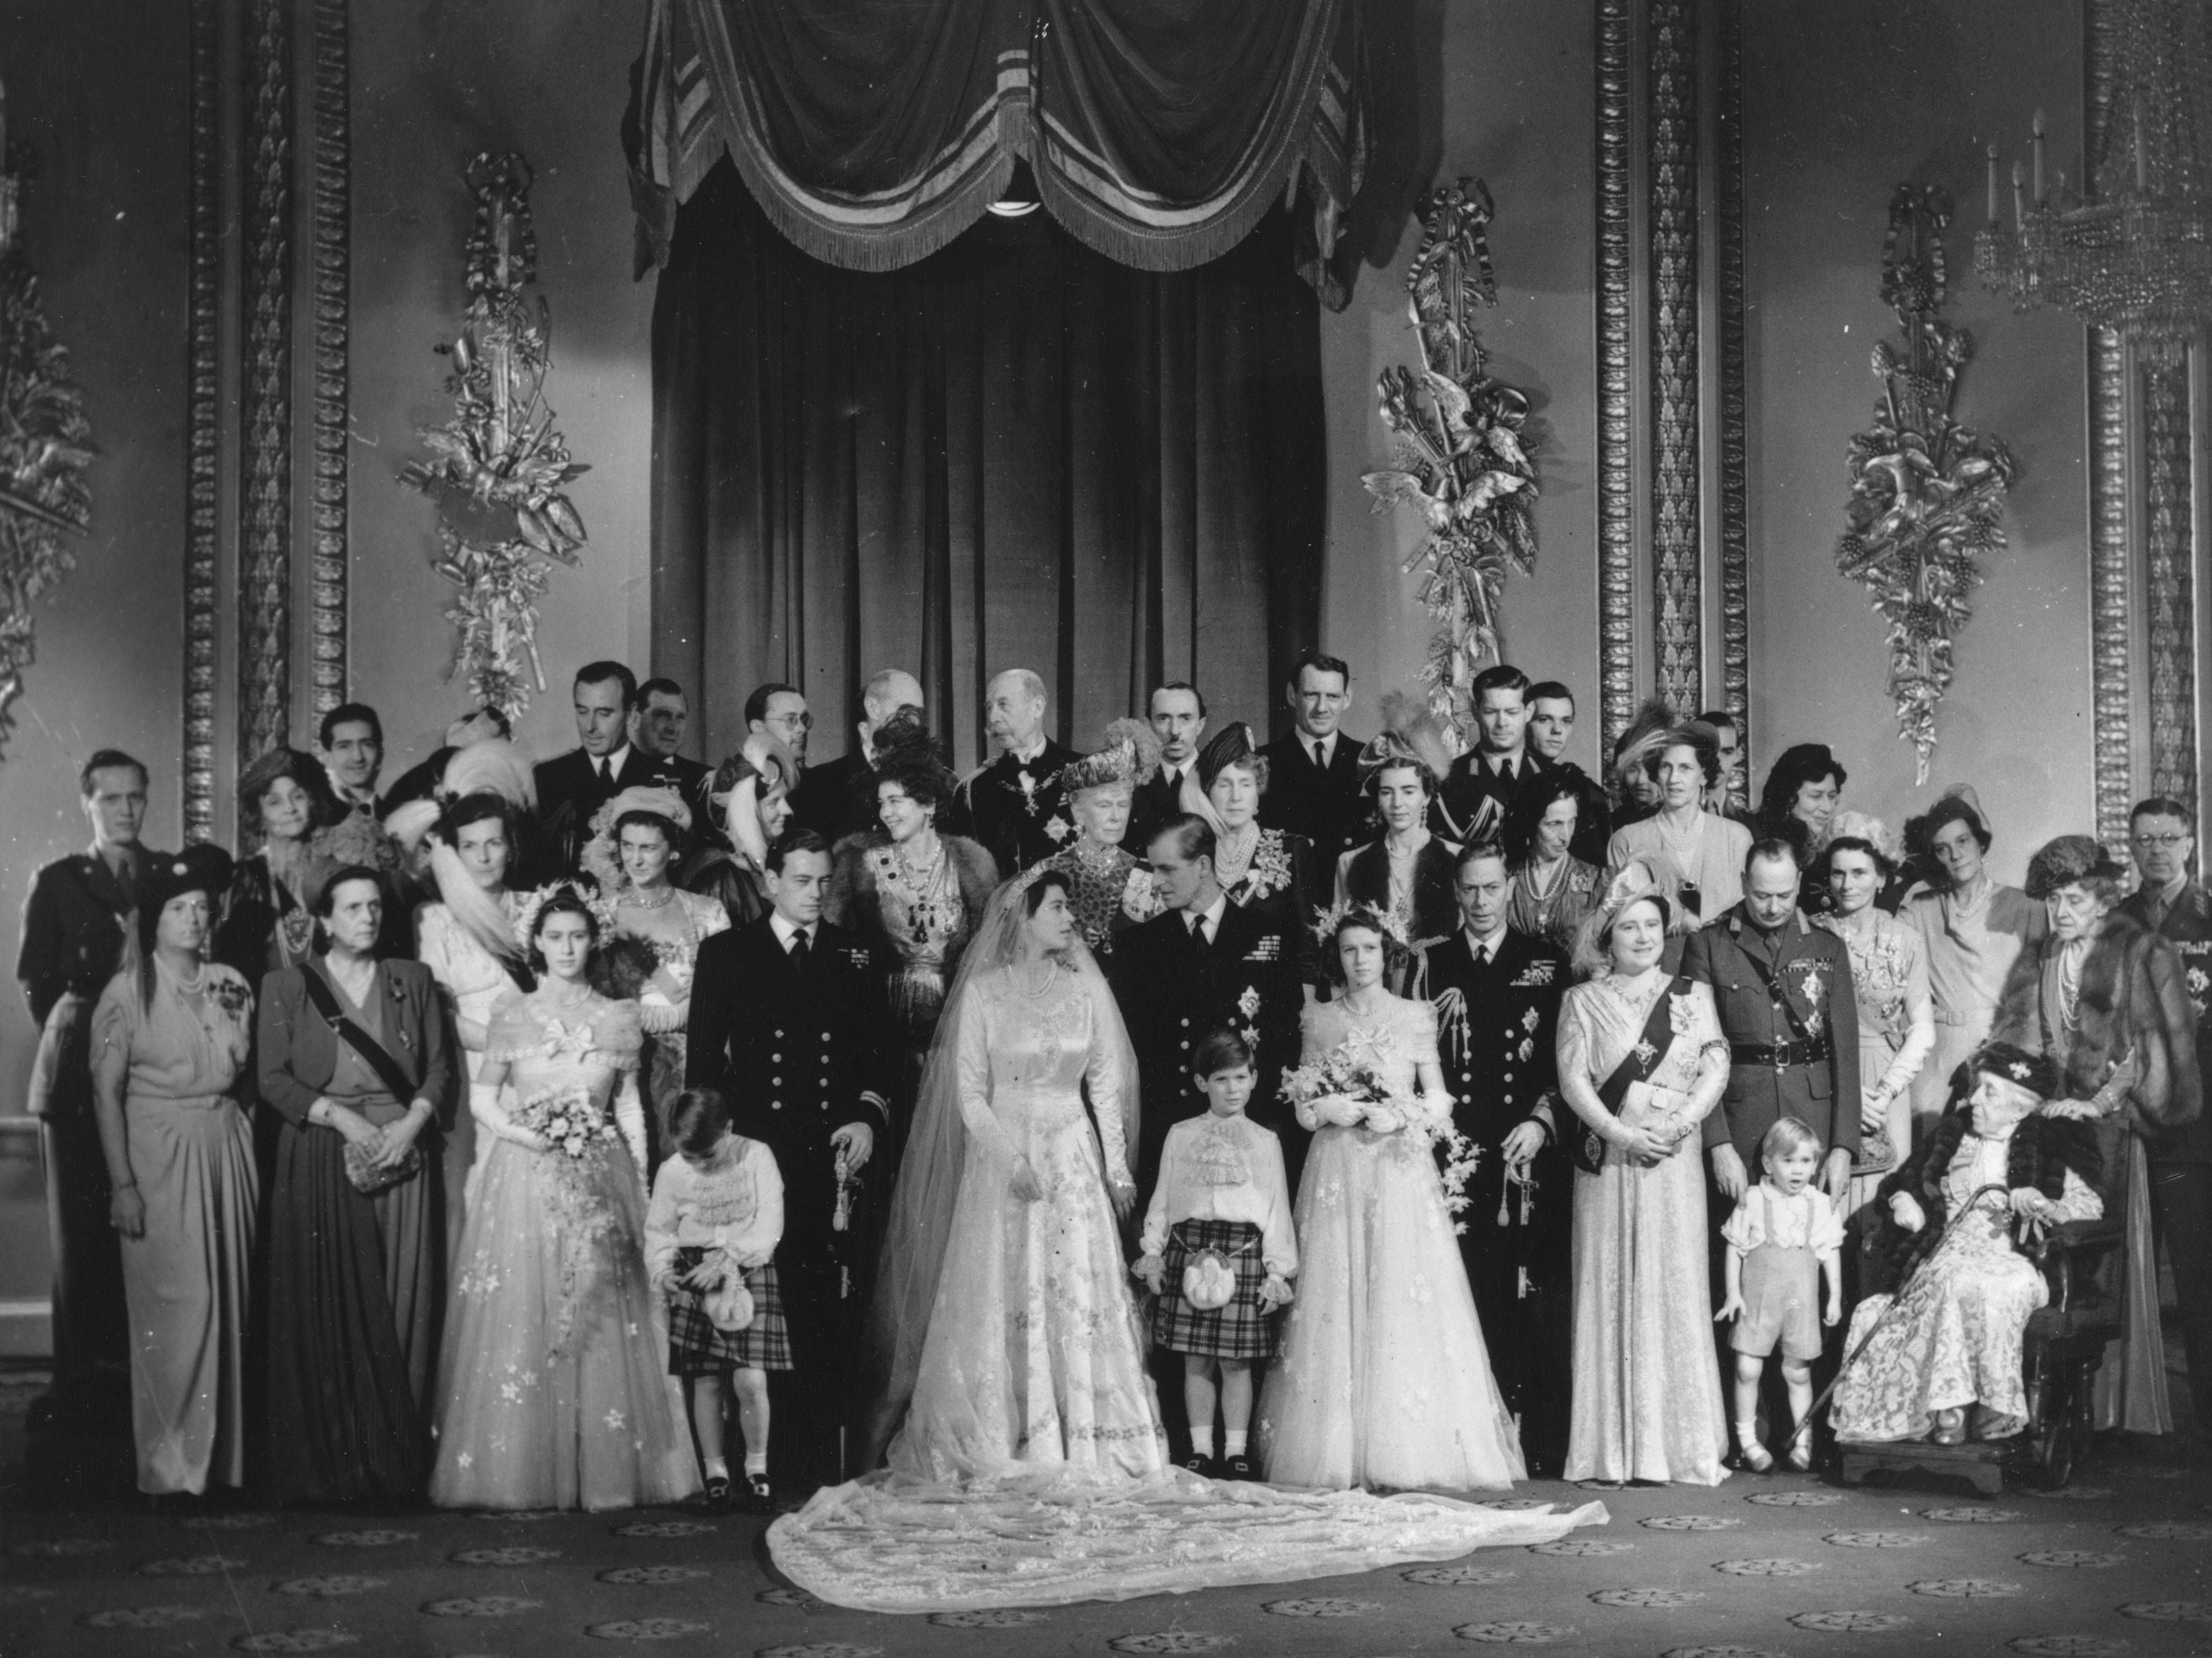 Queen Elizabeth and Prince Philip's 1947 Wedding. Not many people still alive from this photo. I see Prince Michael of Kent in front of Prince Philip, Princess Alexandra in front of King George VI and I think the little boy next to The Queen Mother is Prince Richard of Gloucester.